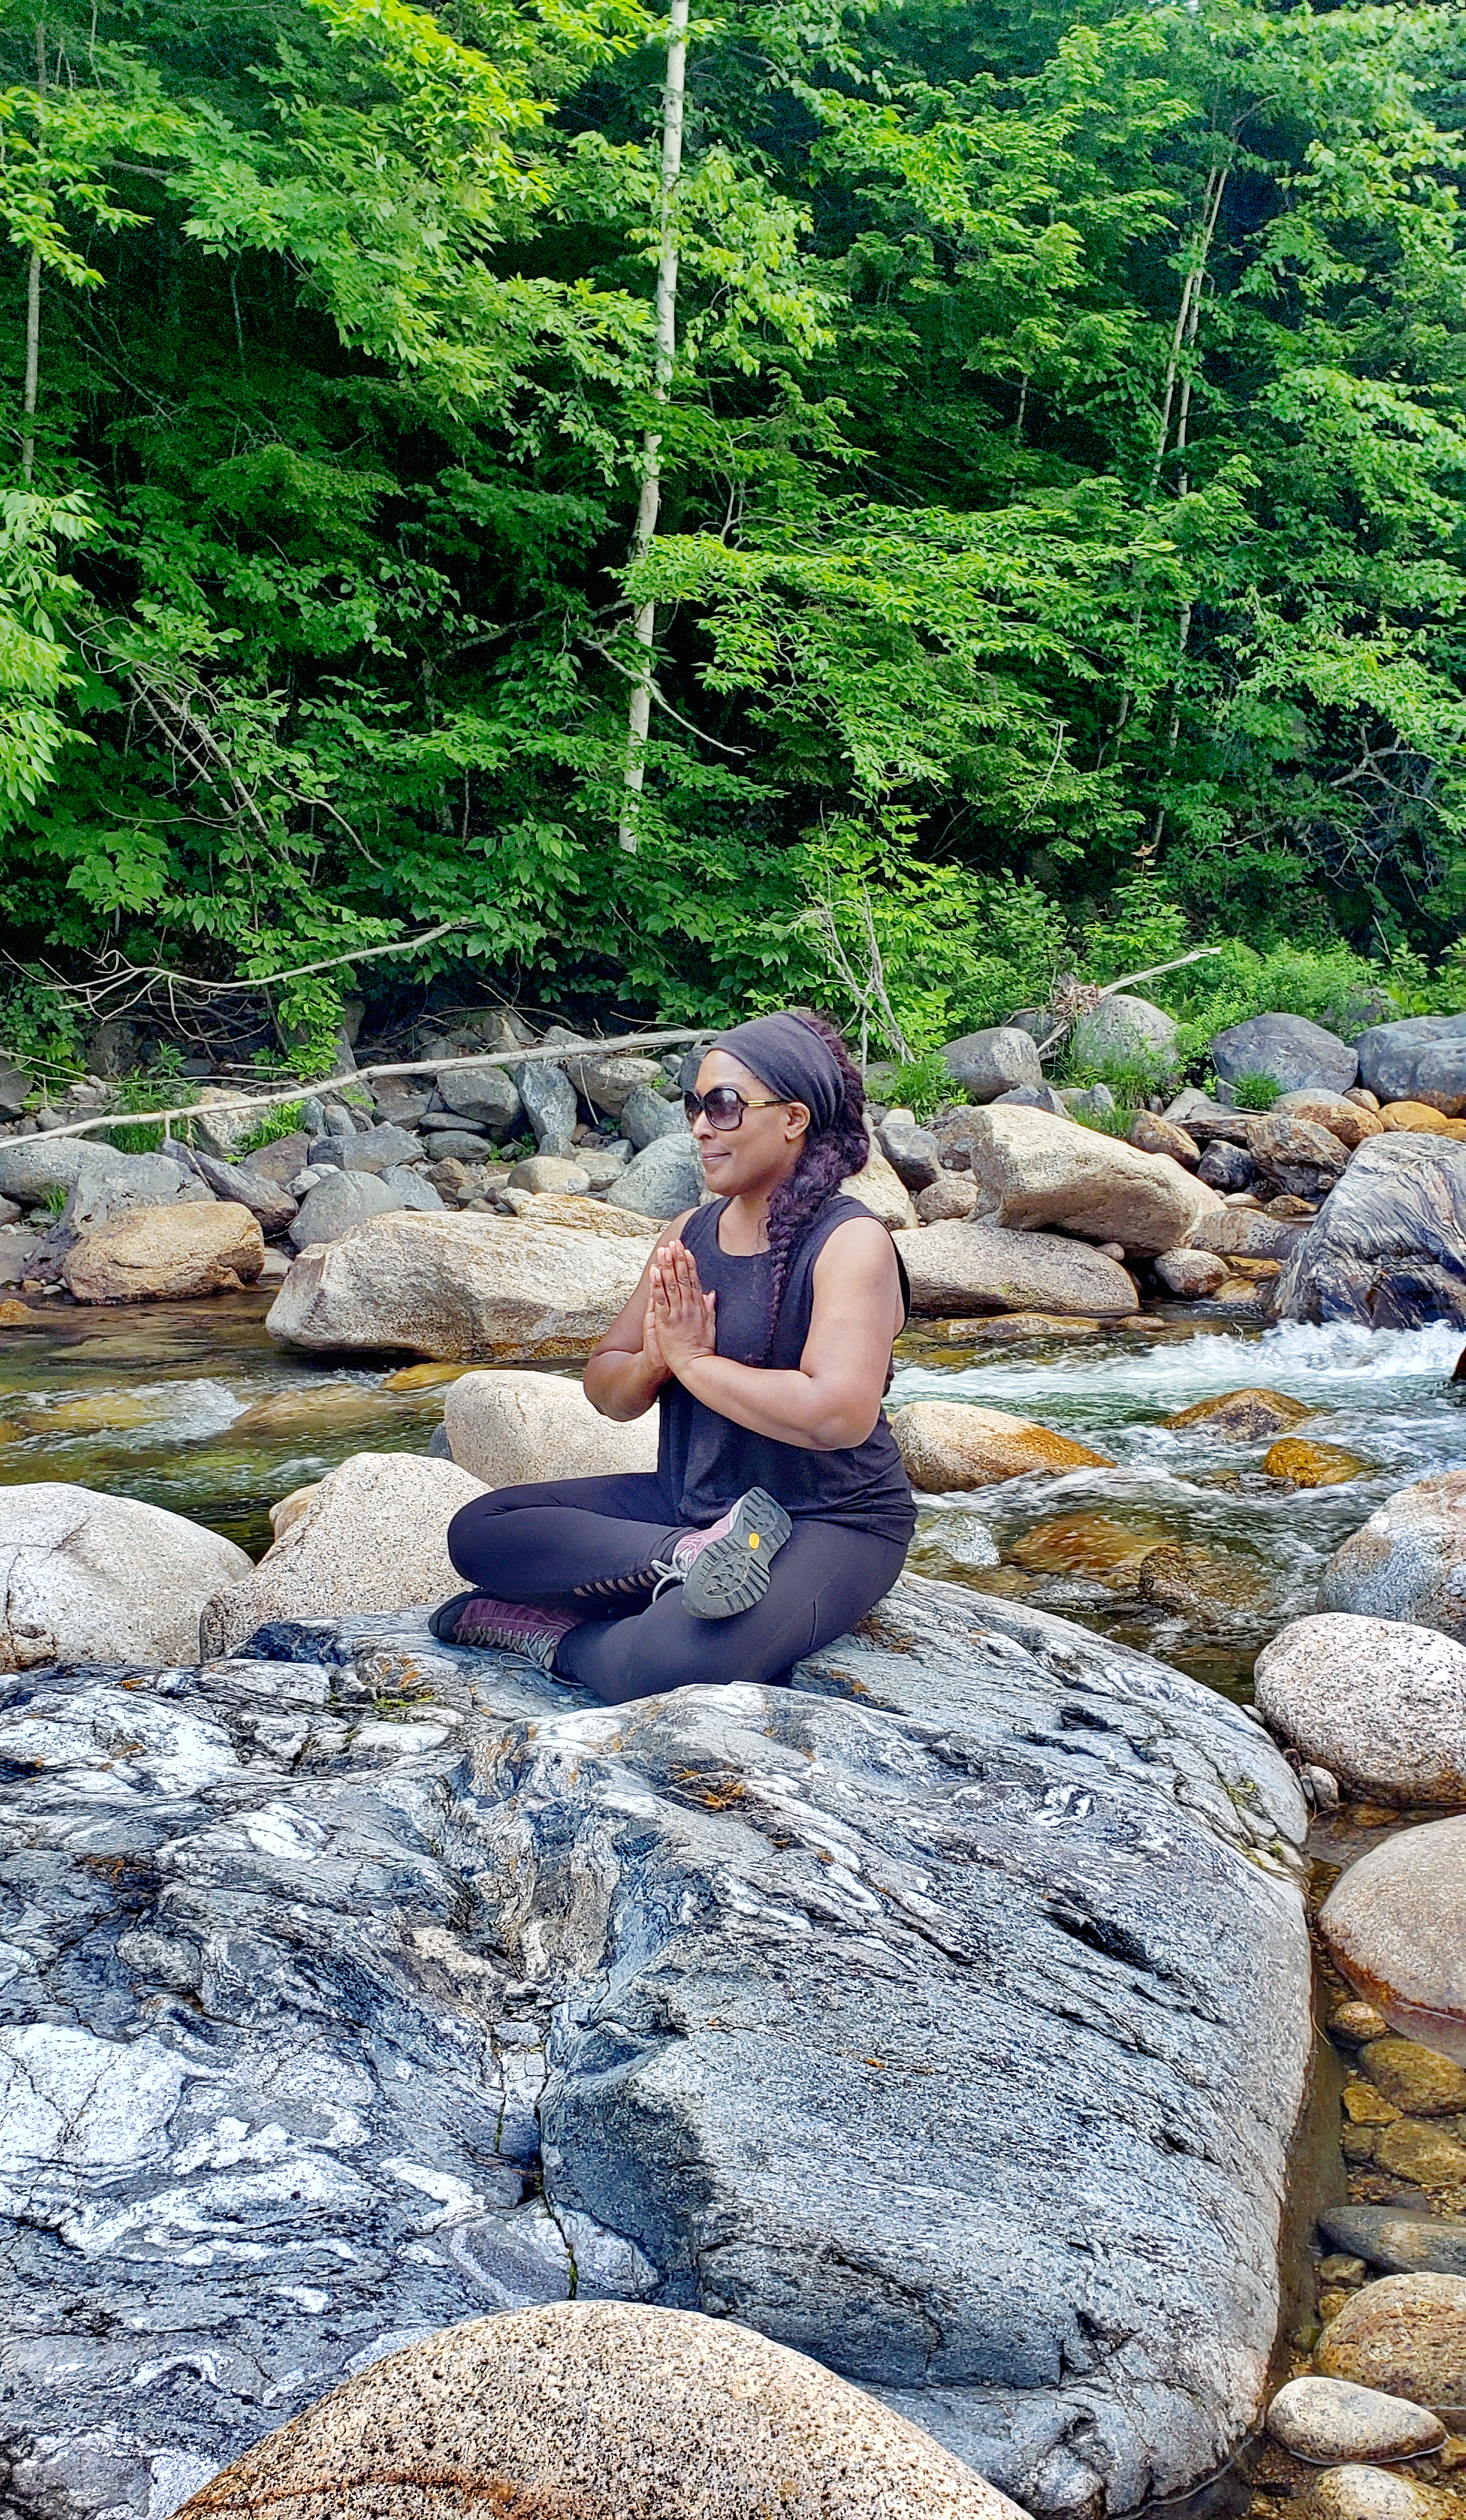 char_willingham_yoga_meditation_hiking_welch_dickey_loop